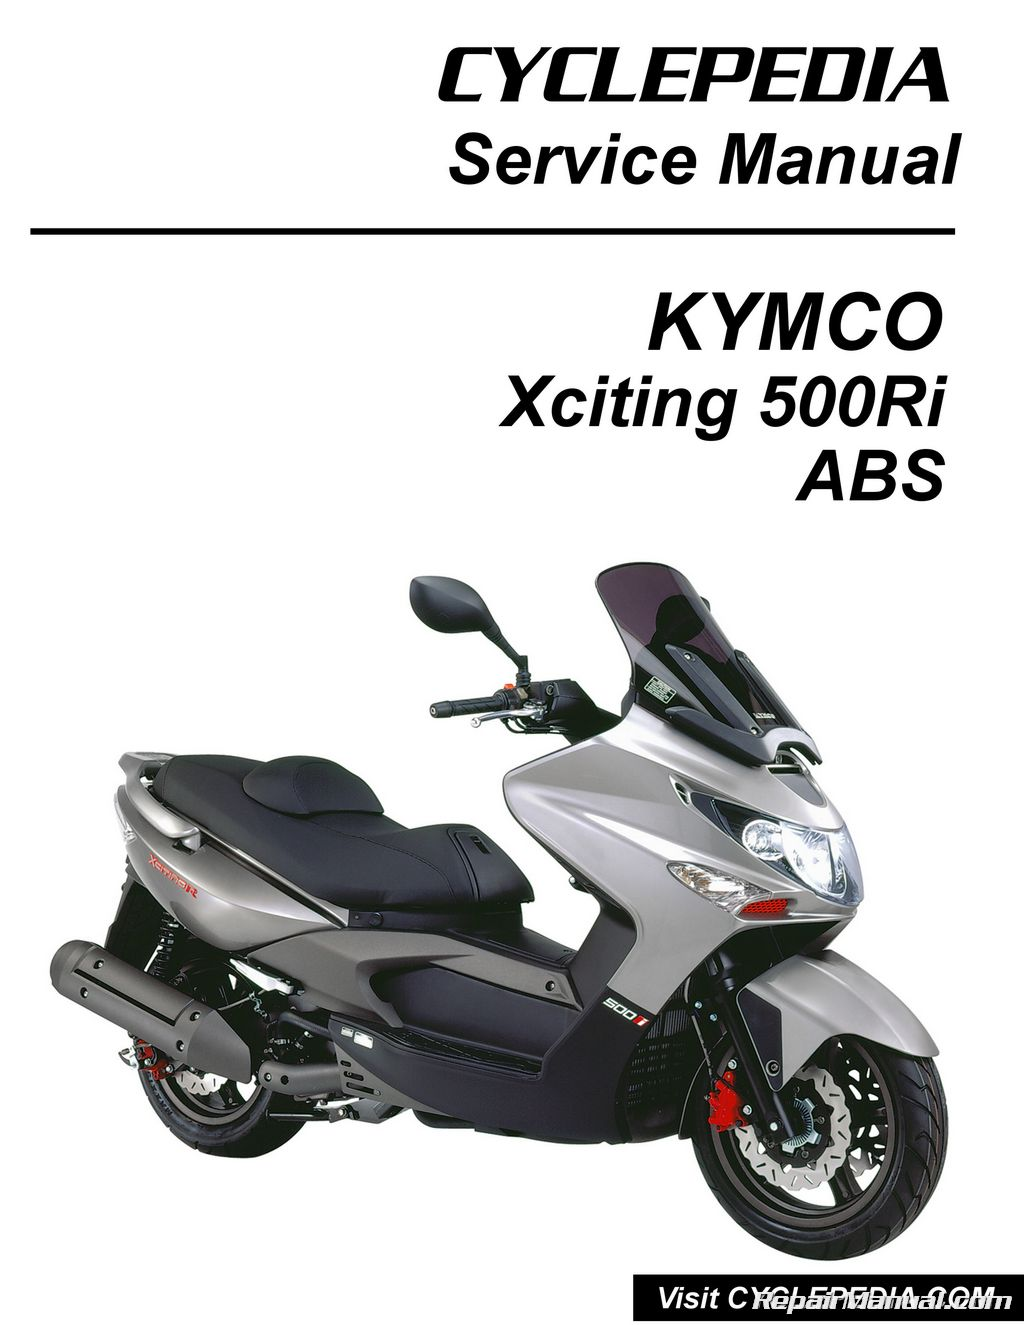 hight resolution of kymco xciting 500ri abs scooter service manual